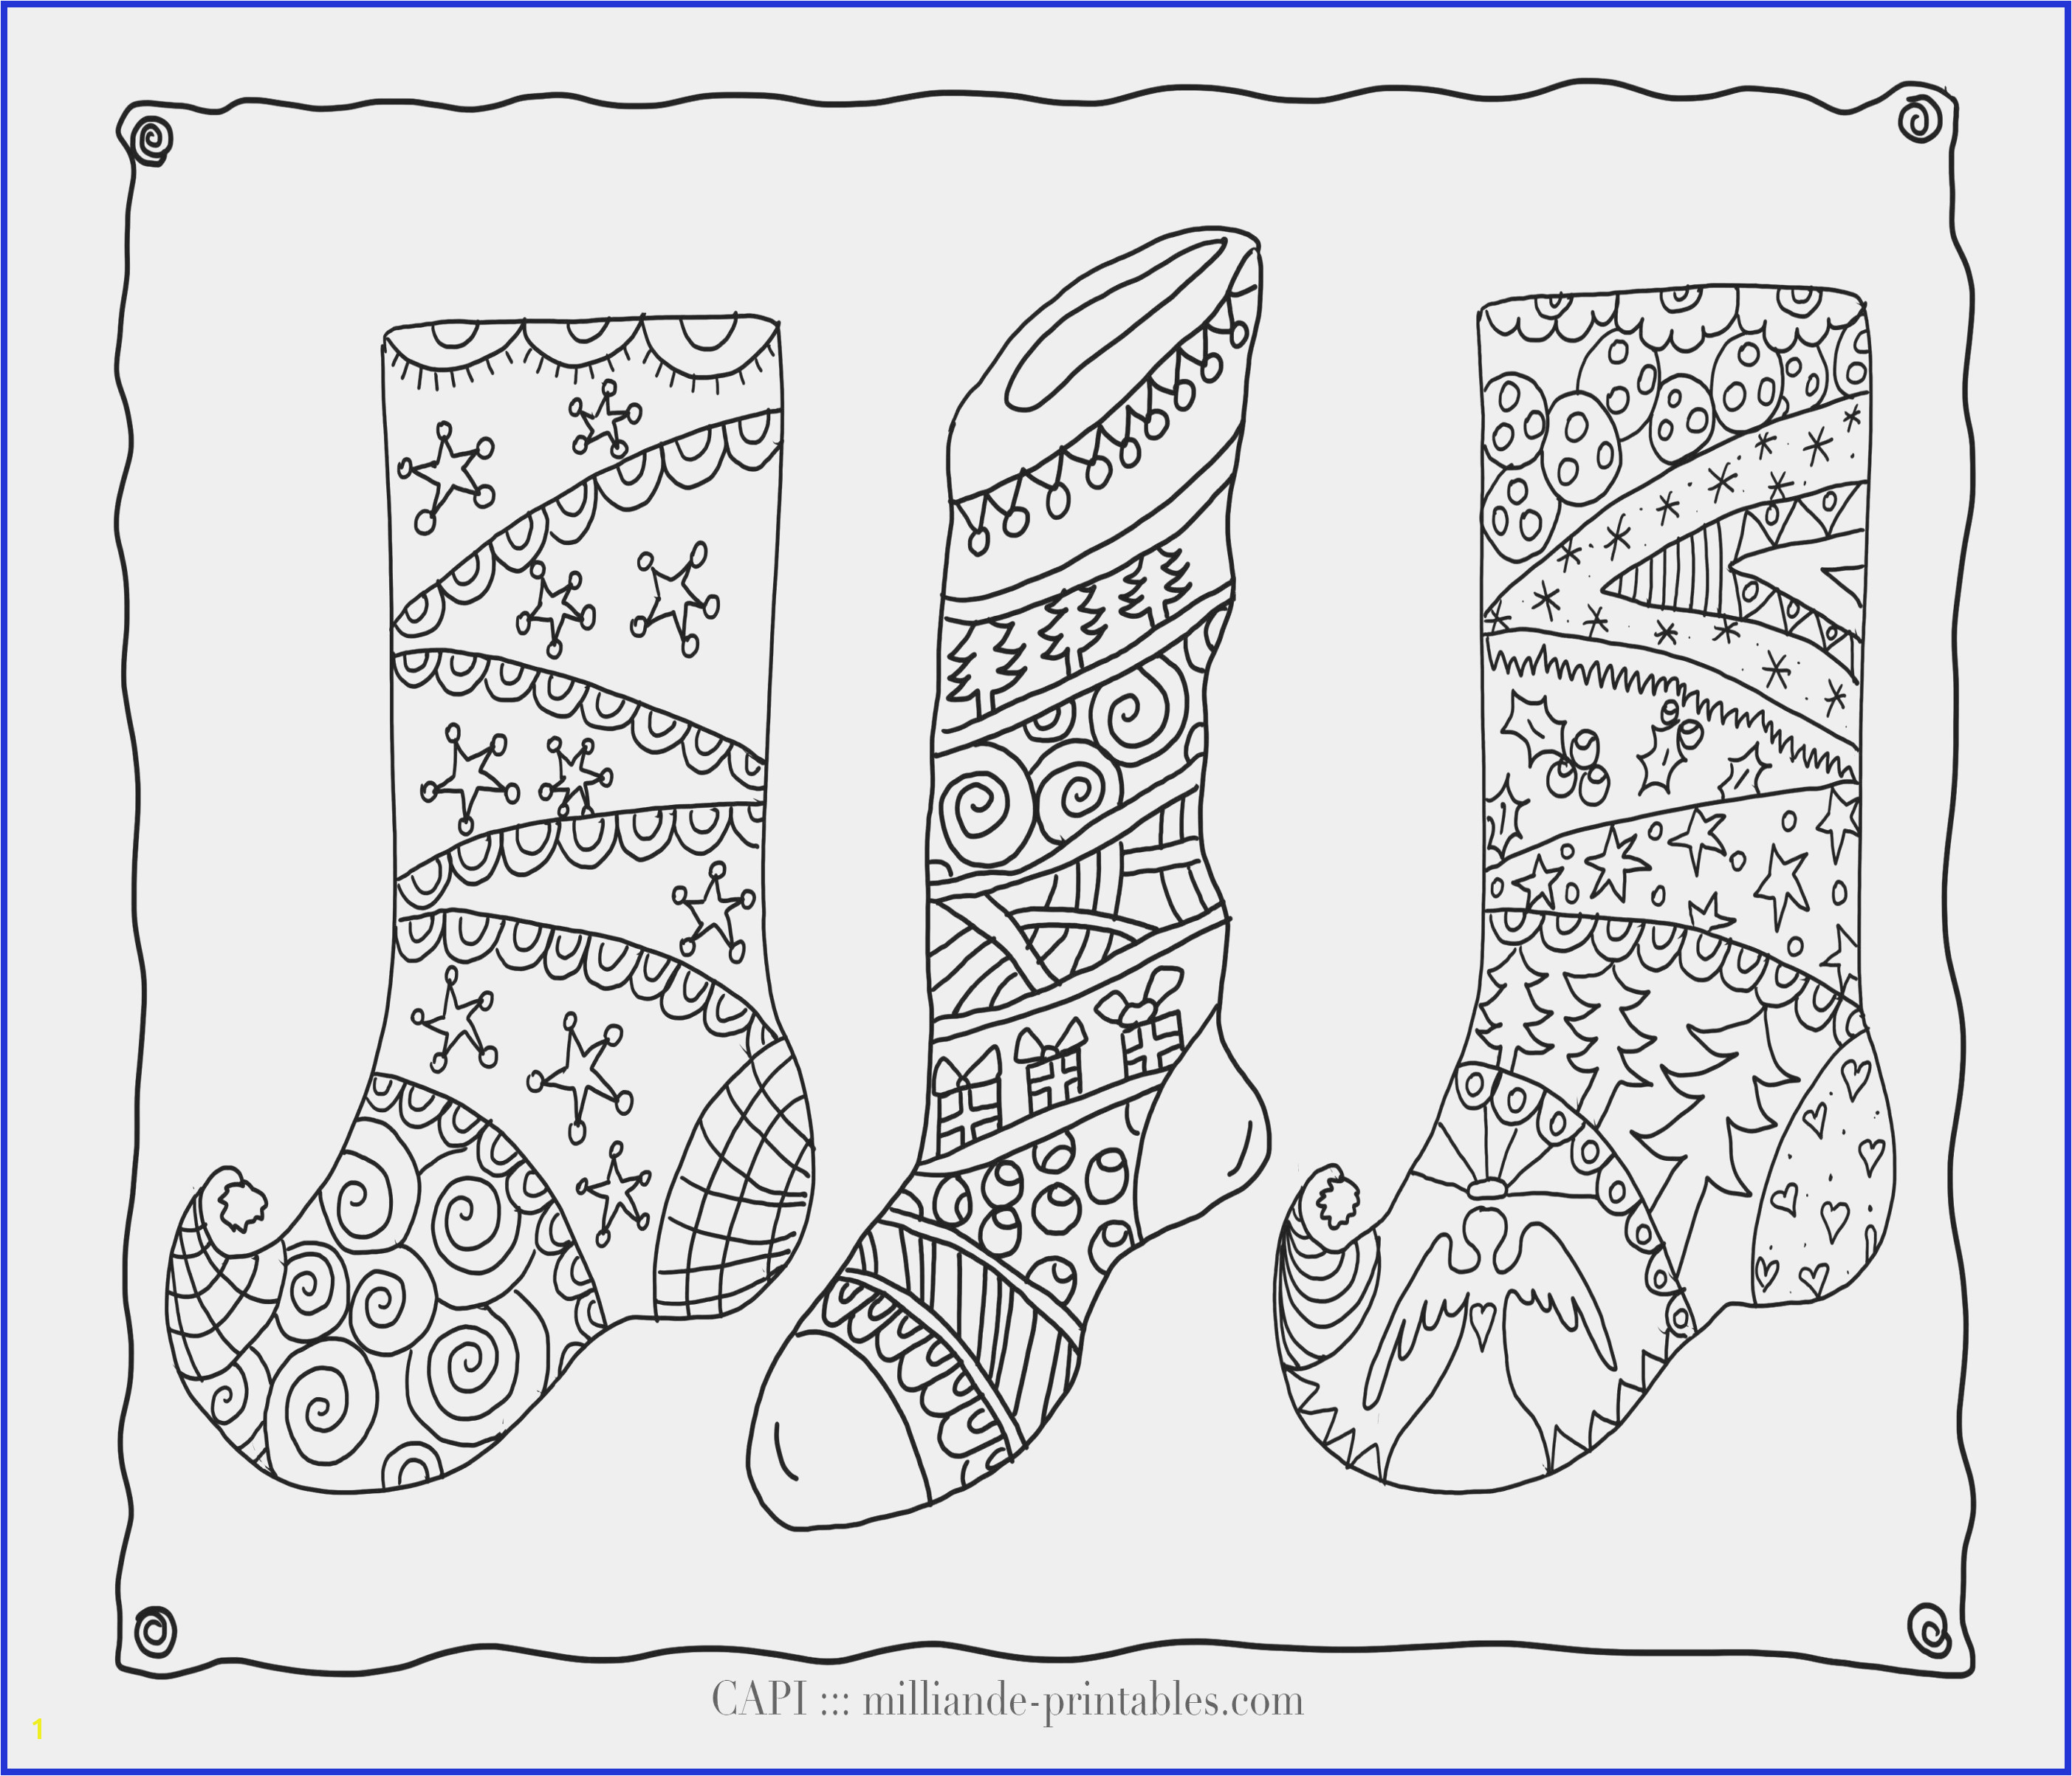 free printable christmas coloring pages for kids Full Size of Coloring Pages free Printable Christmas